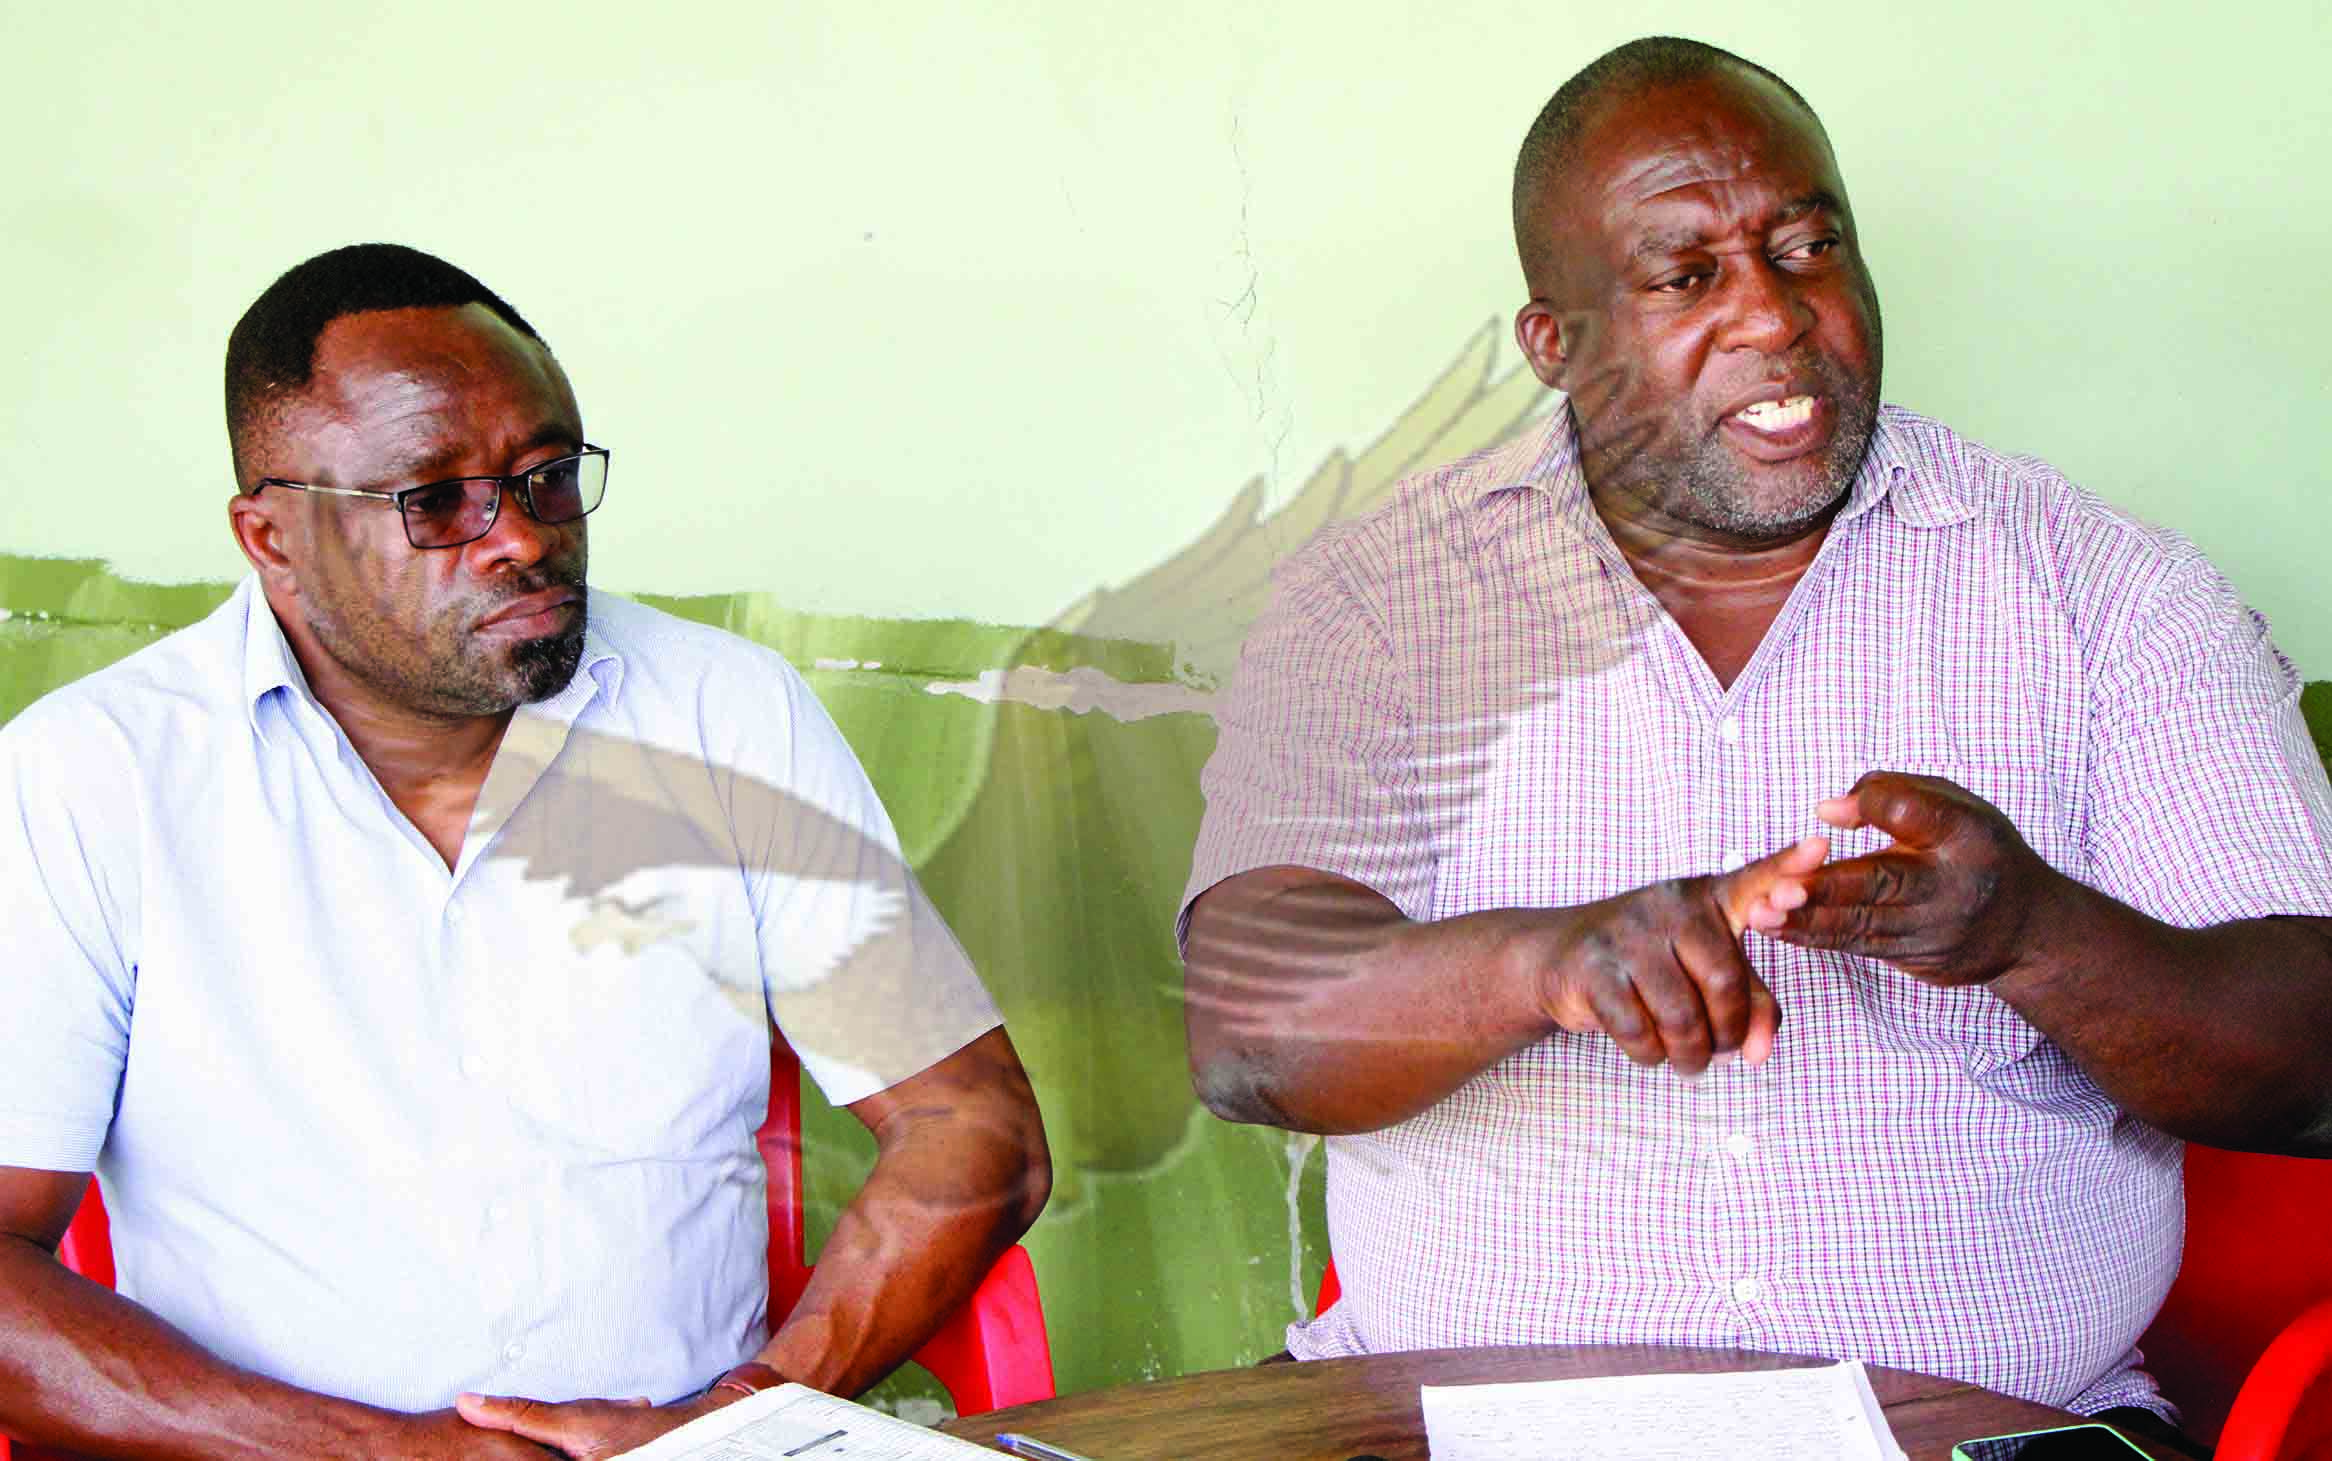 NDC has pulled out of alliance, says Musenge